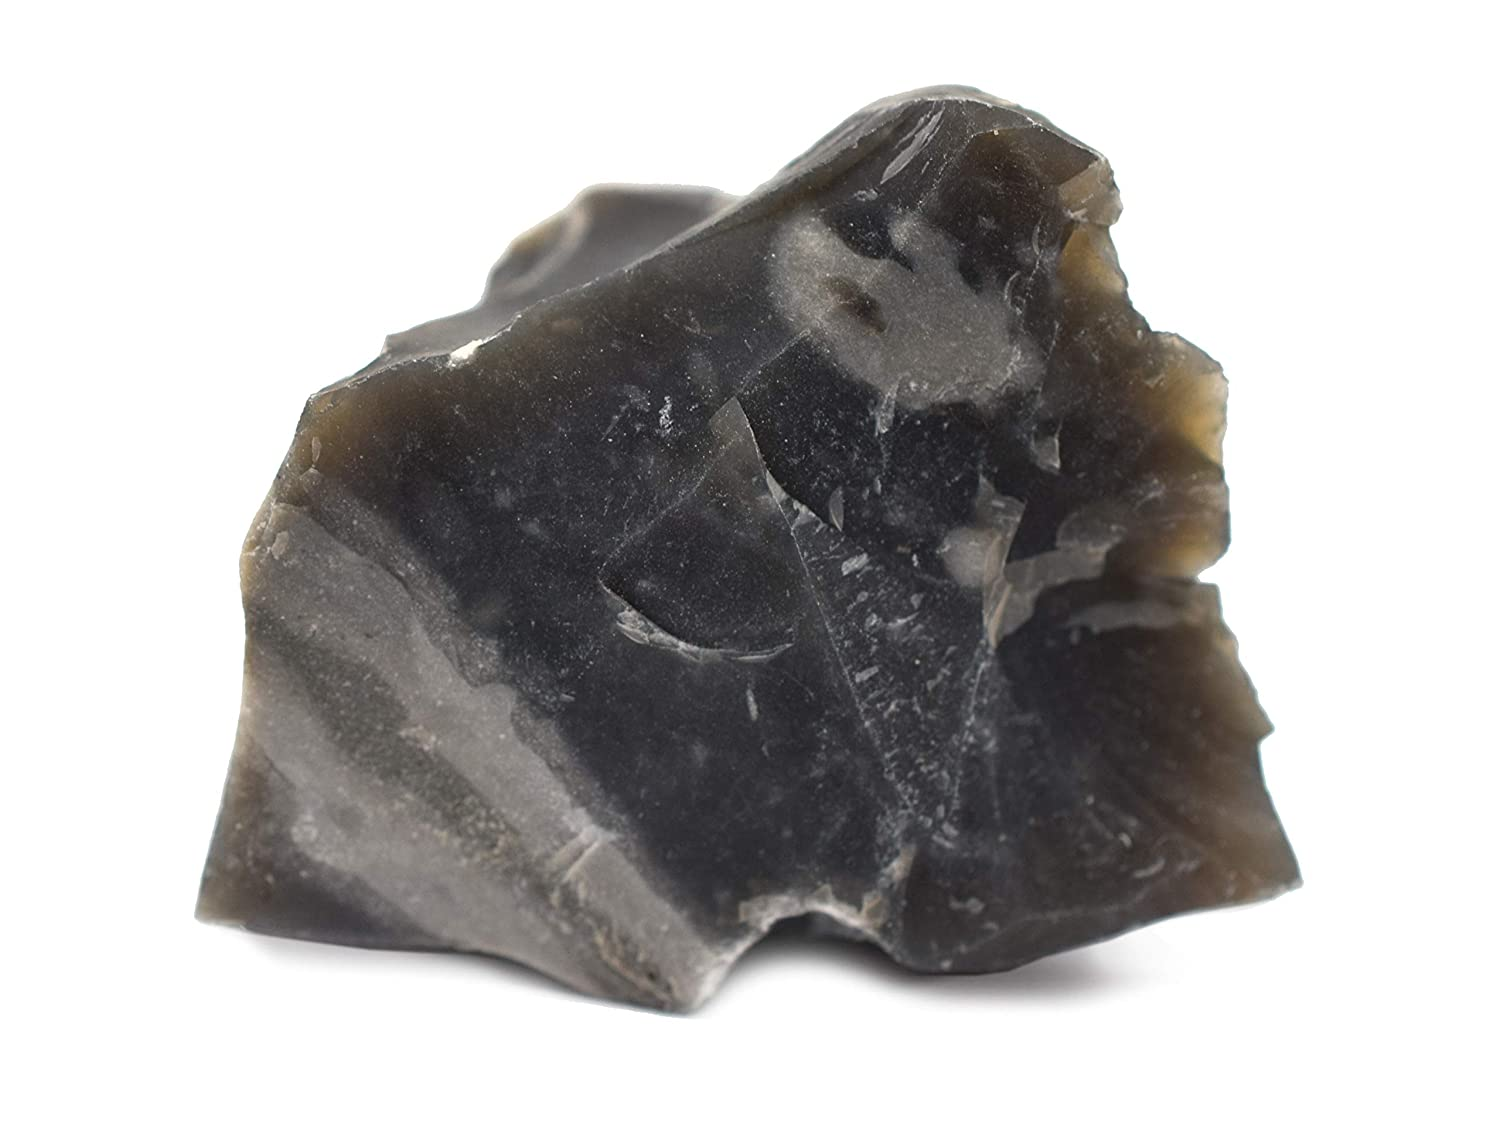 Mineral Specimen Eisco Labs 1 Raw Chert Geologist Selected /& Hand Processed Approx Great for Science Classrooms